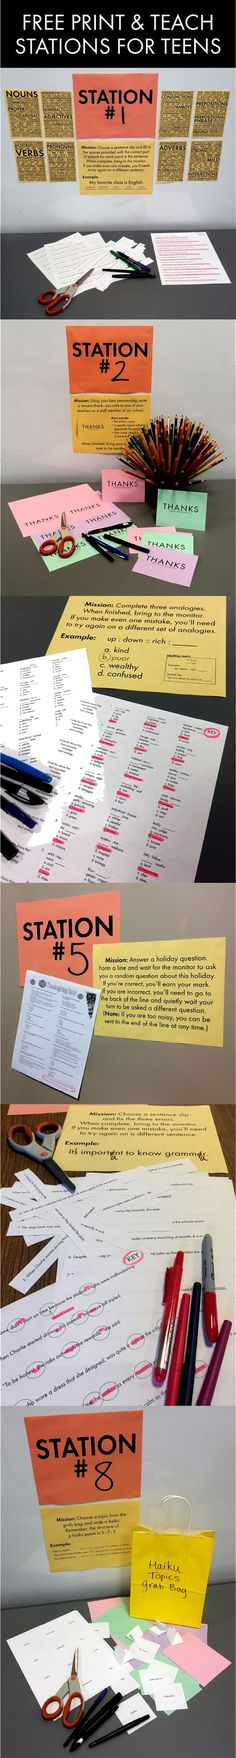 FREE print & teach station materials for middle school and high school teachers #stations #lessonidea #highschool #middleschool #Englishteacher